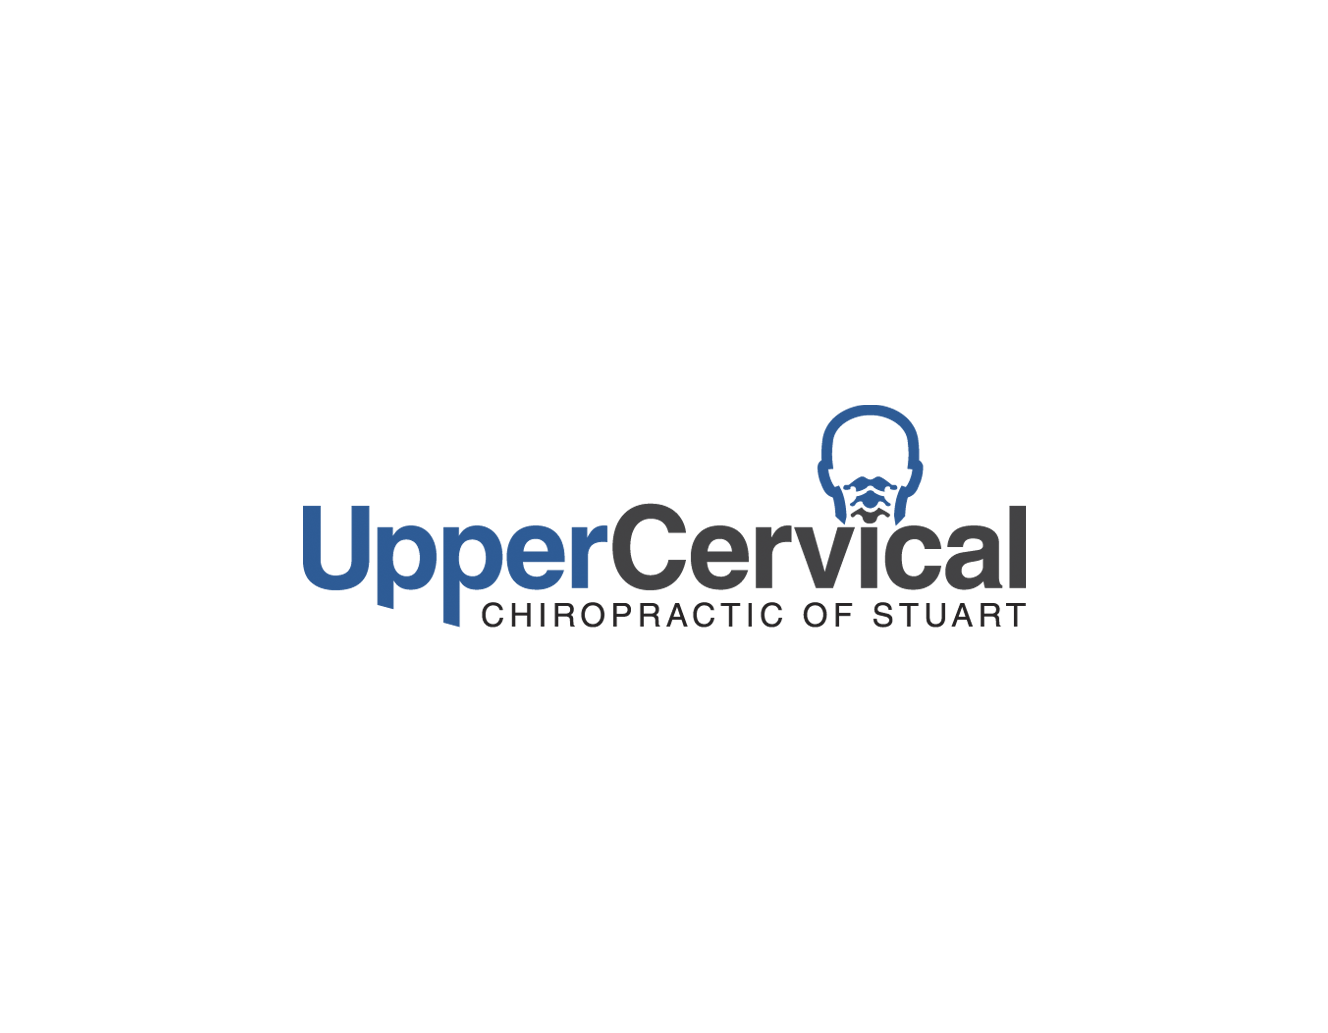 Help Upper Cervical Chiropractic of Stuart with a new logo